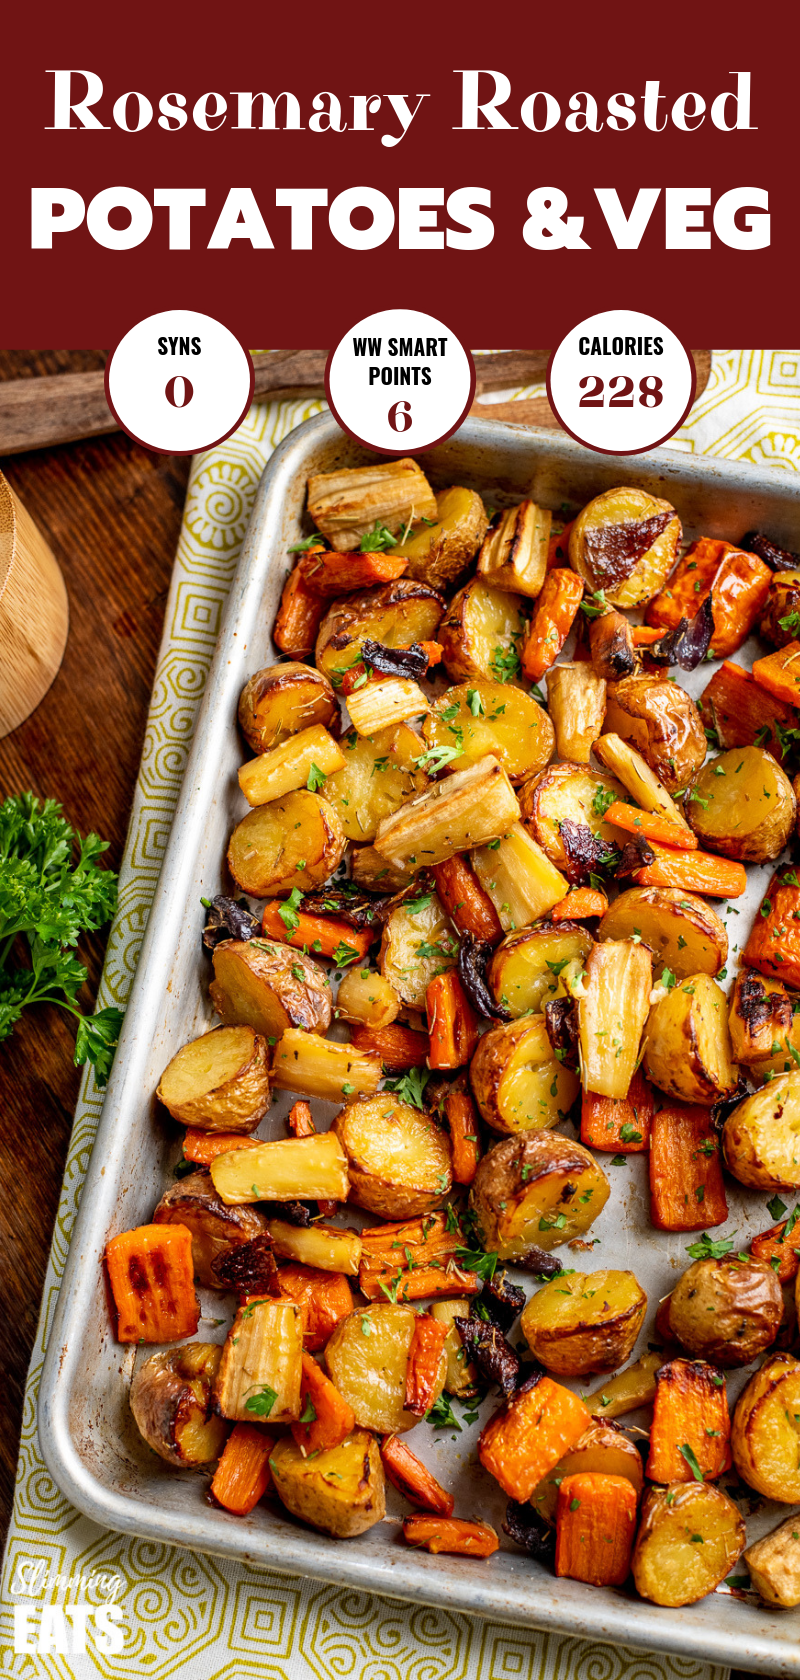 Rosemary Roasted Potatoes, Parsnips, Carrots and Onion | Slimming Eats